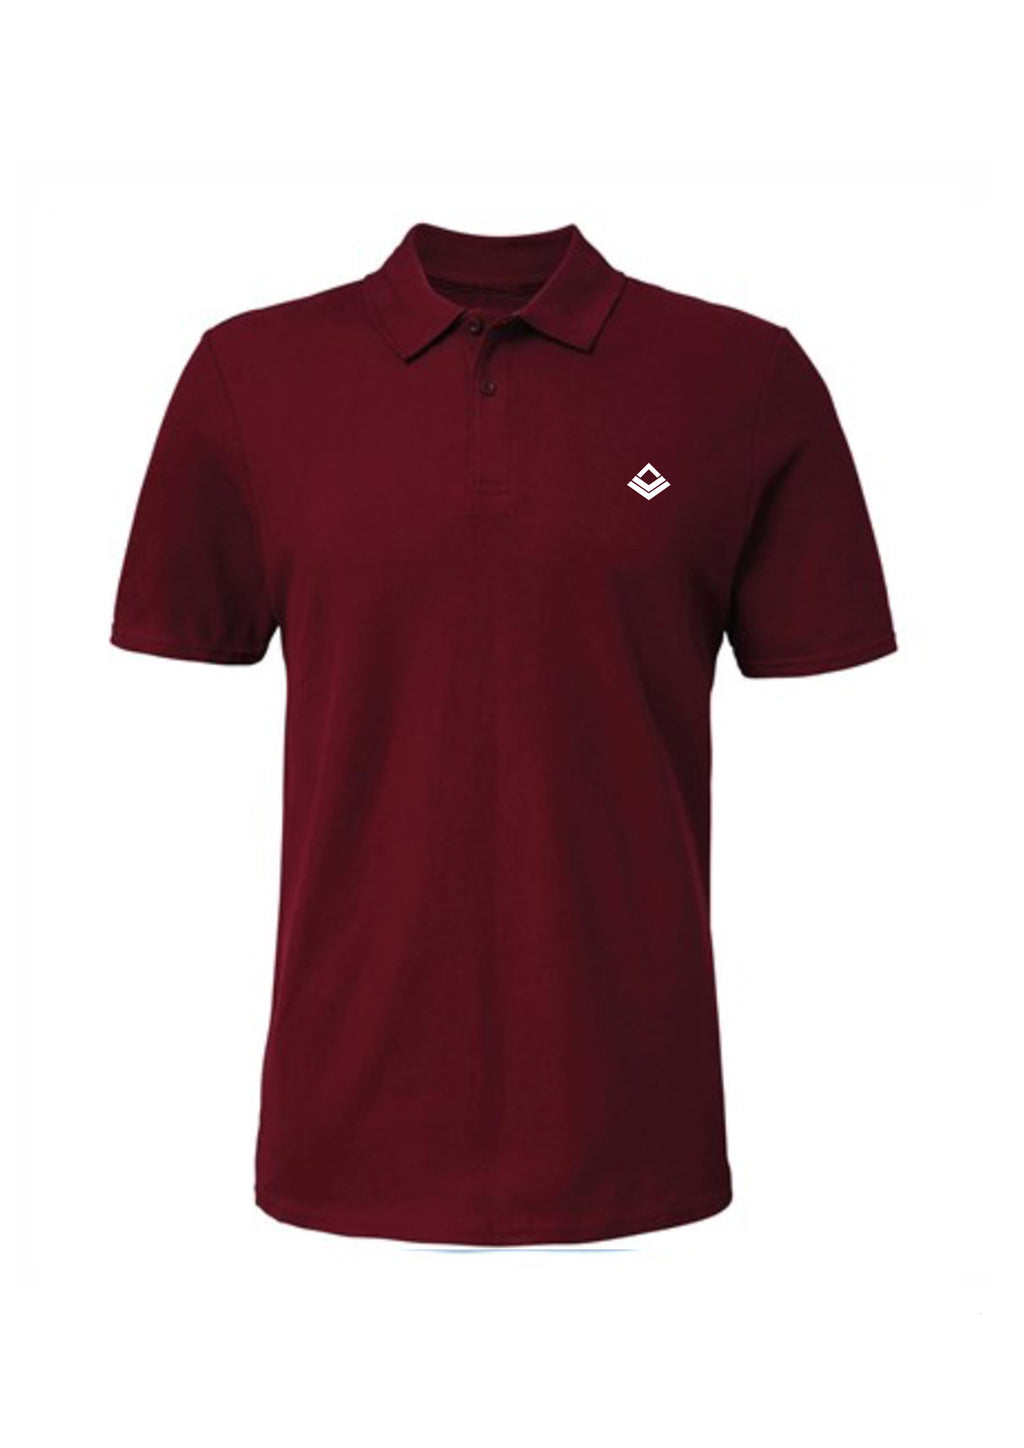 Swaggerlicious Maroon Simple Polo Shirt with White Logo